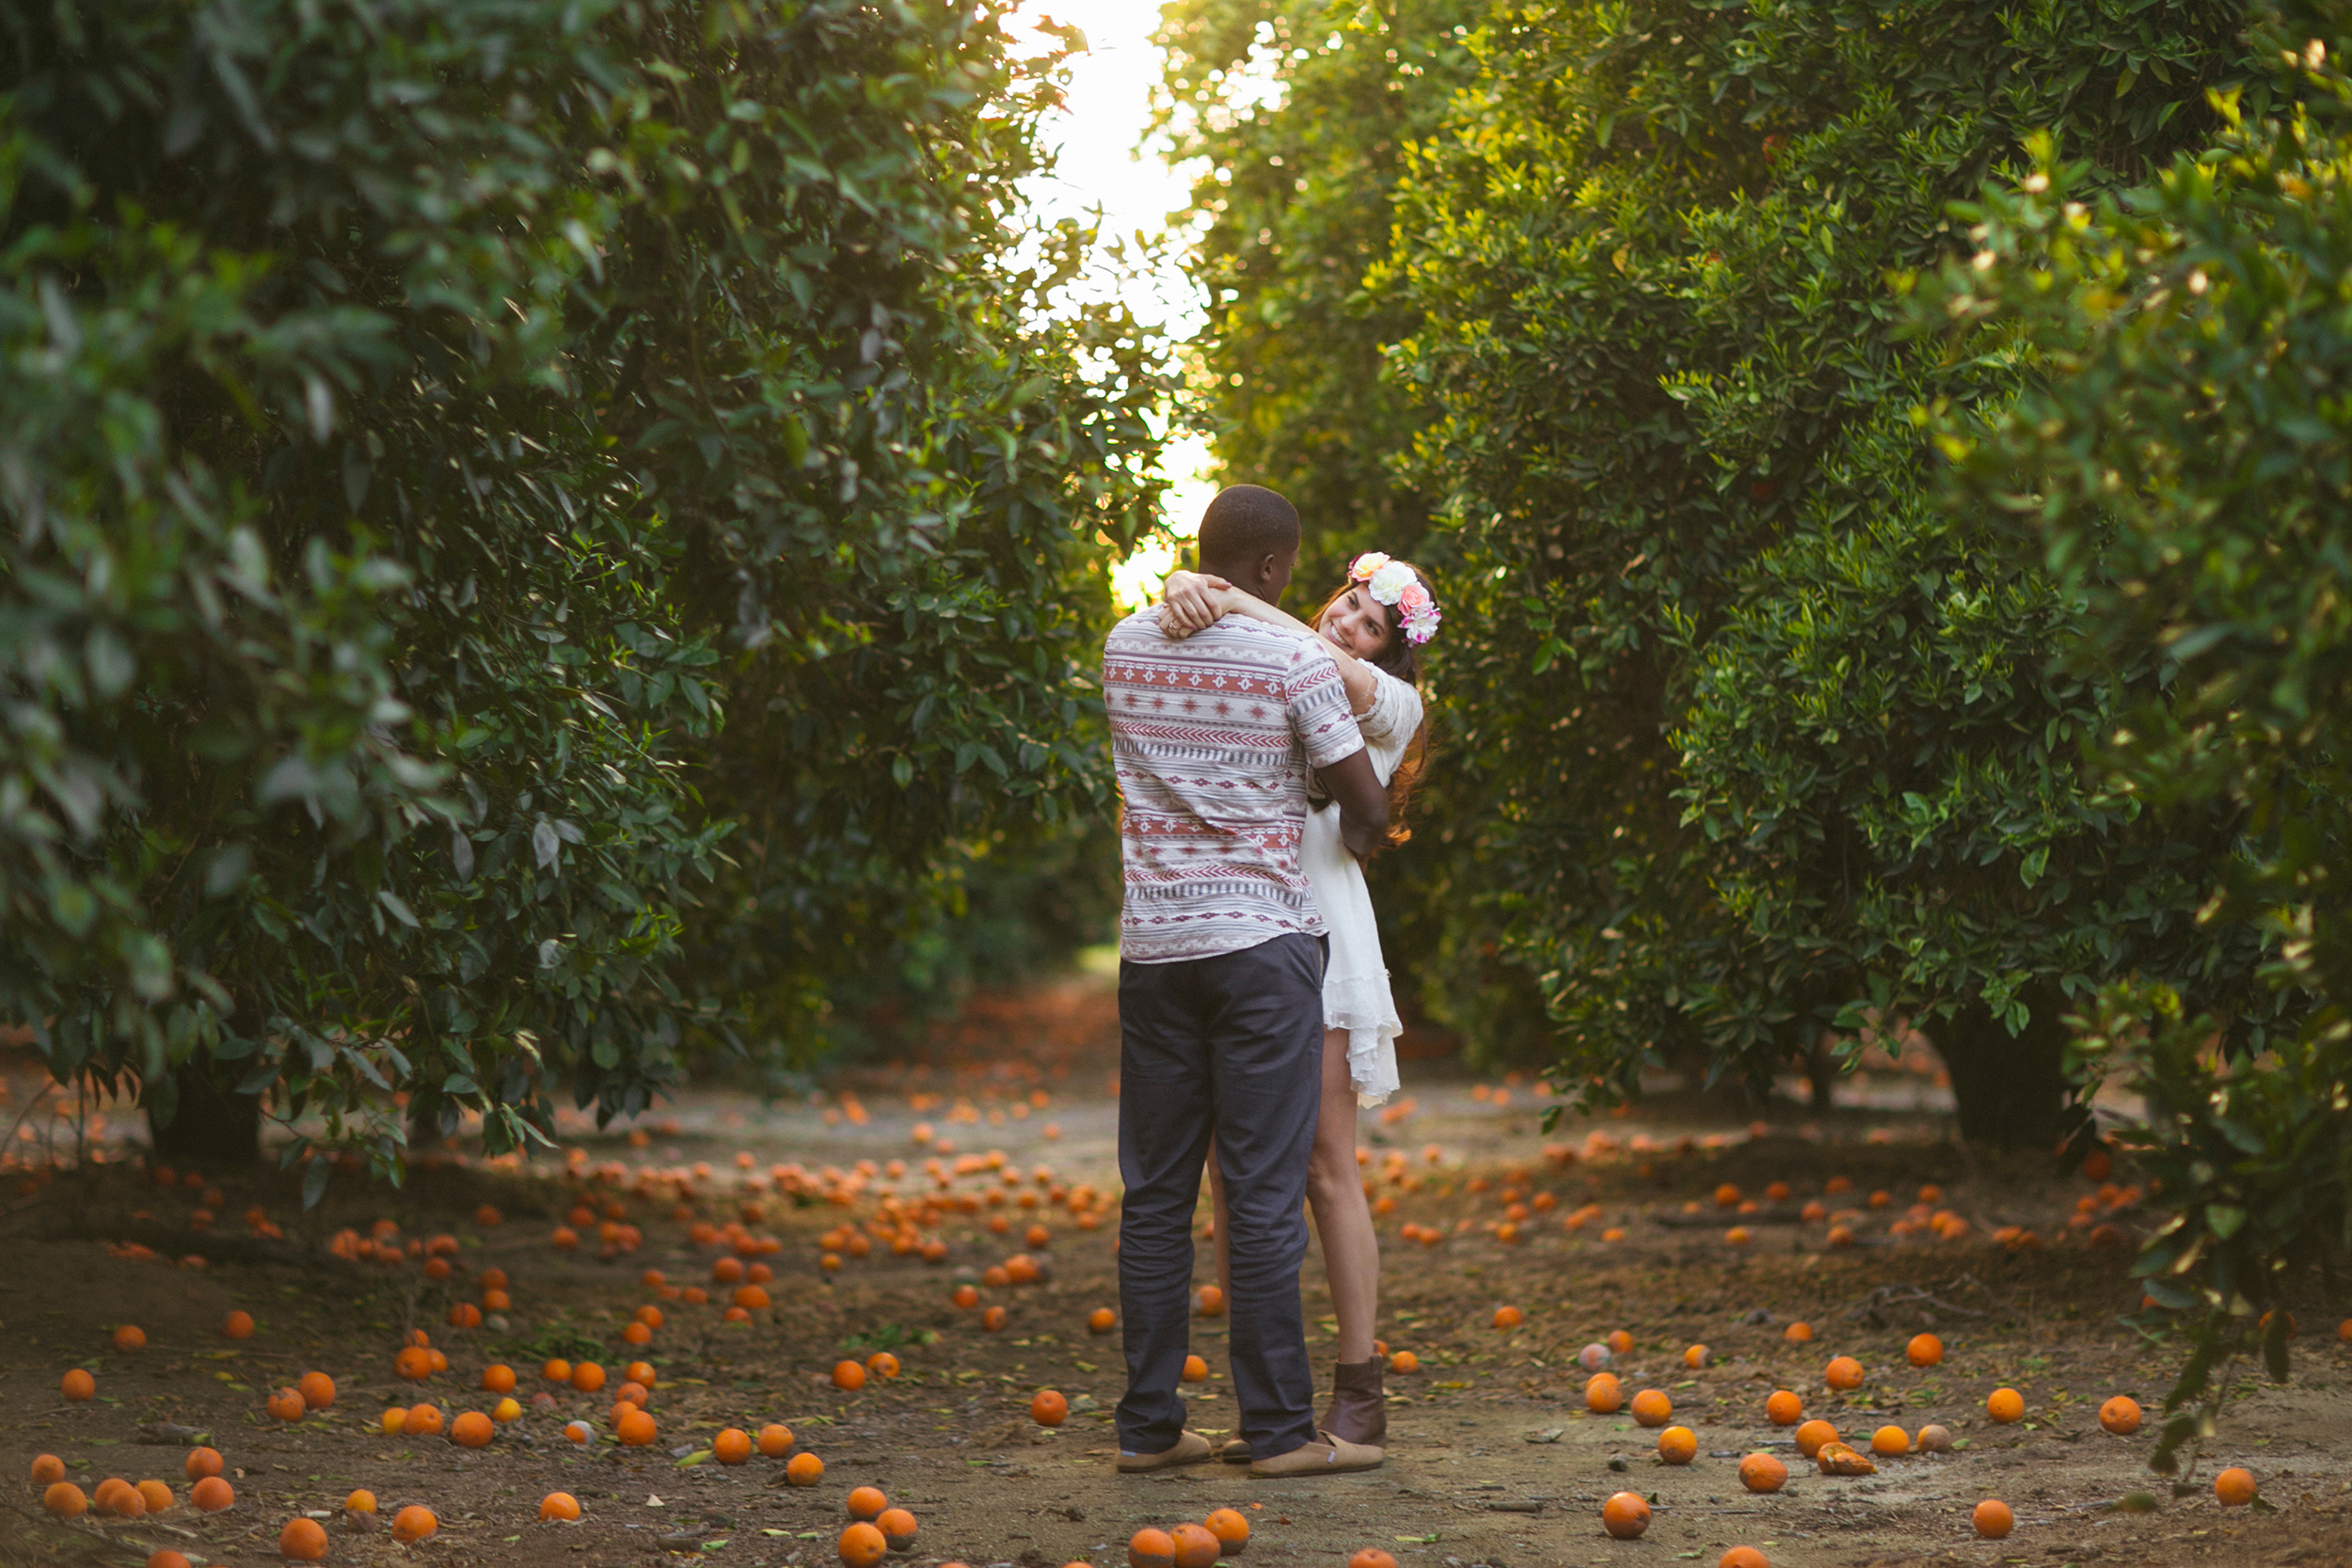 Colby-and-Jess-Adventure-Engagement-Photography-Orange-Grove-San-Bernardino-California262.jpg